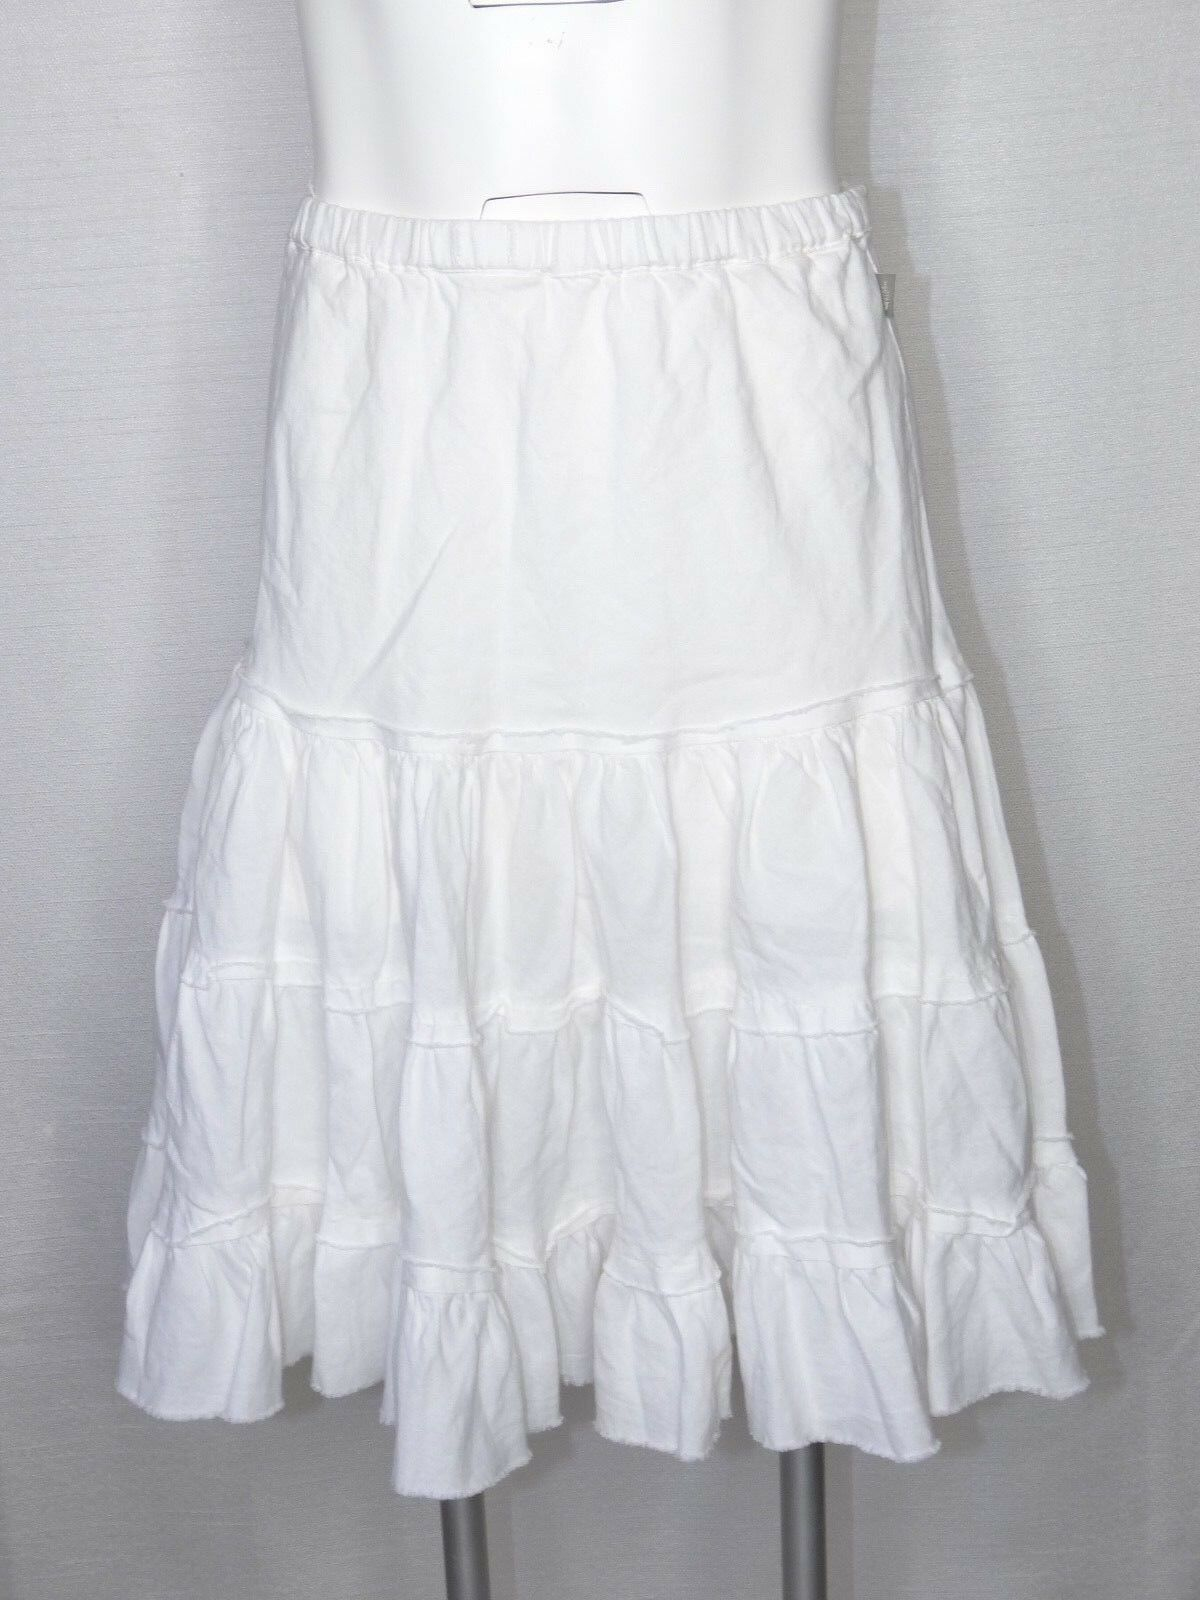 The North Face Small Petite White Skirt A5 Layered Ruffle